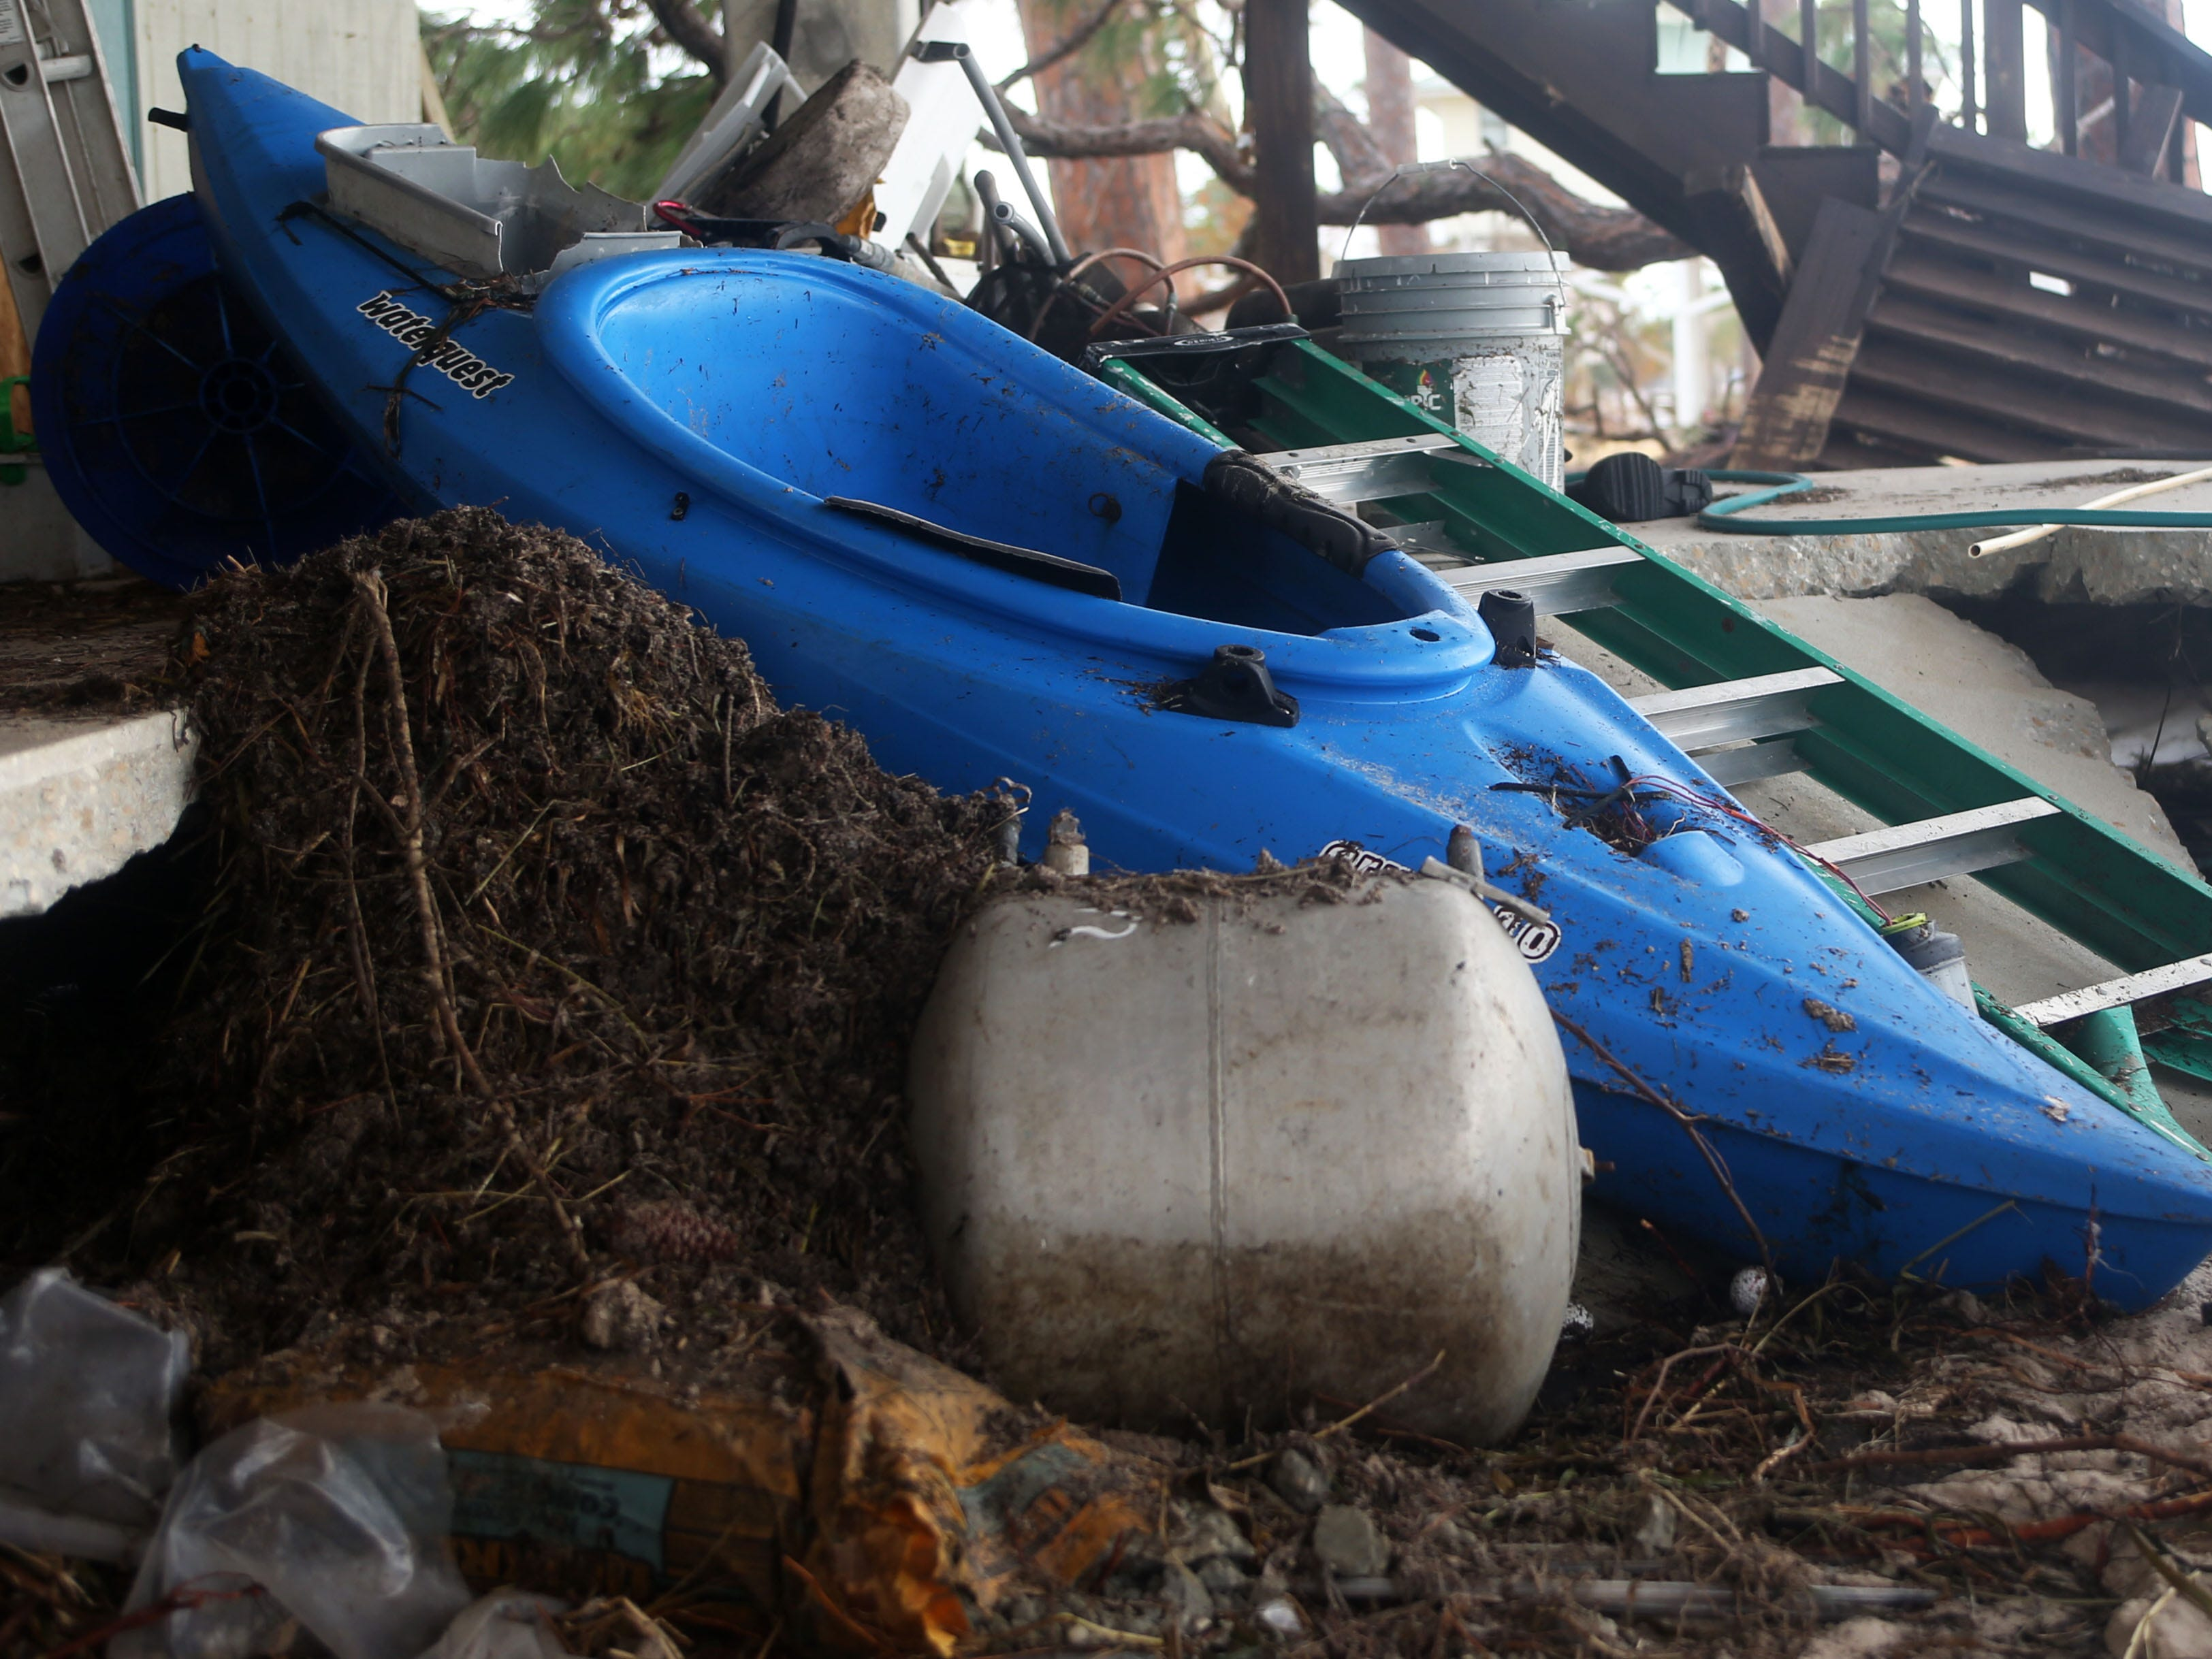 Belongings displaced by Hurricane Michael at Lewis and Celeda Christie's home in Lanark, Fla. on Monday, Oct. 15, 2018.